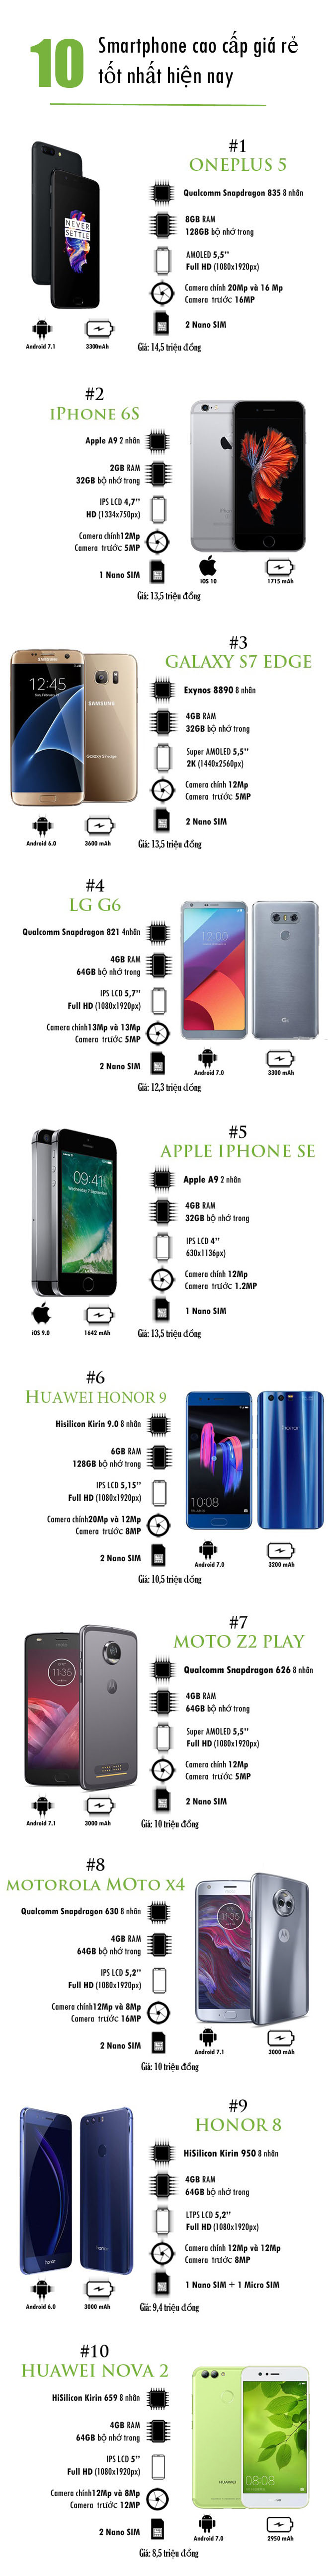 10 smartphone cao cap gia re tot nhat hien nay hinh anh 1